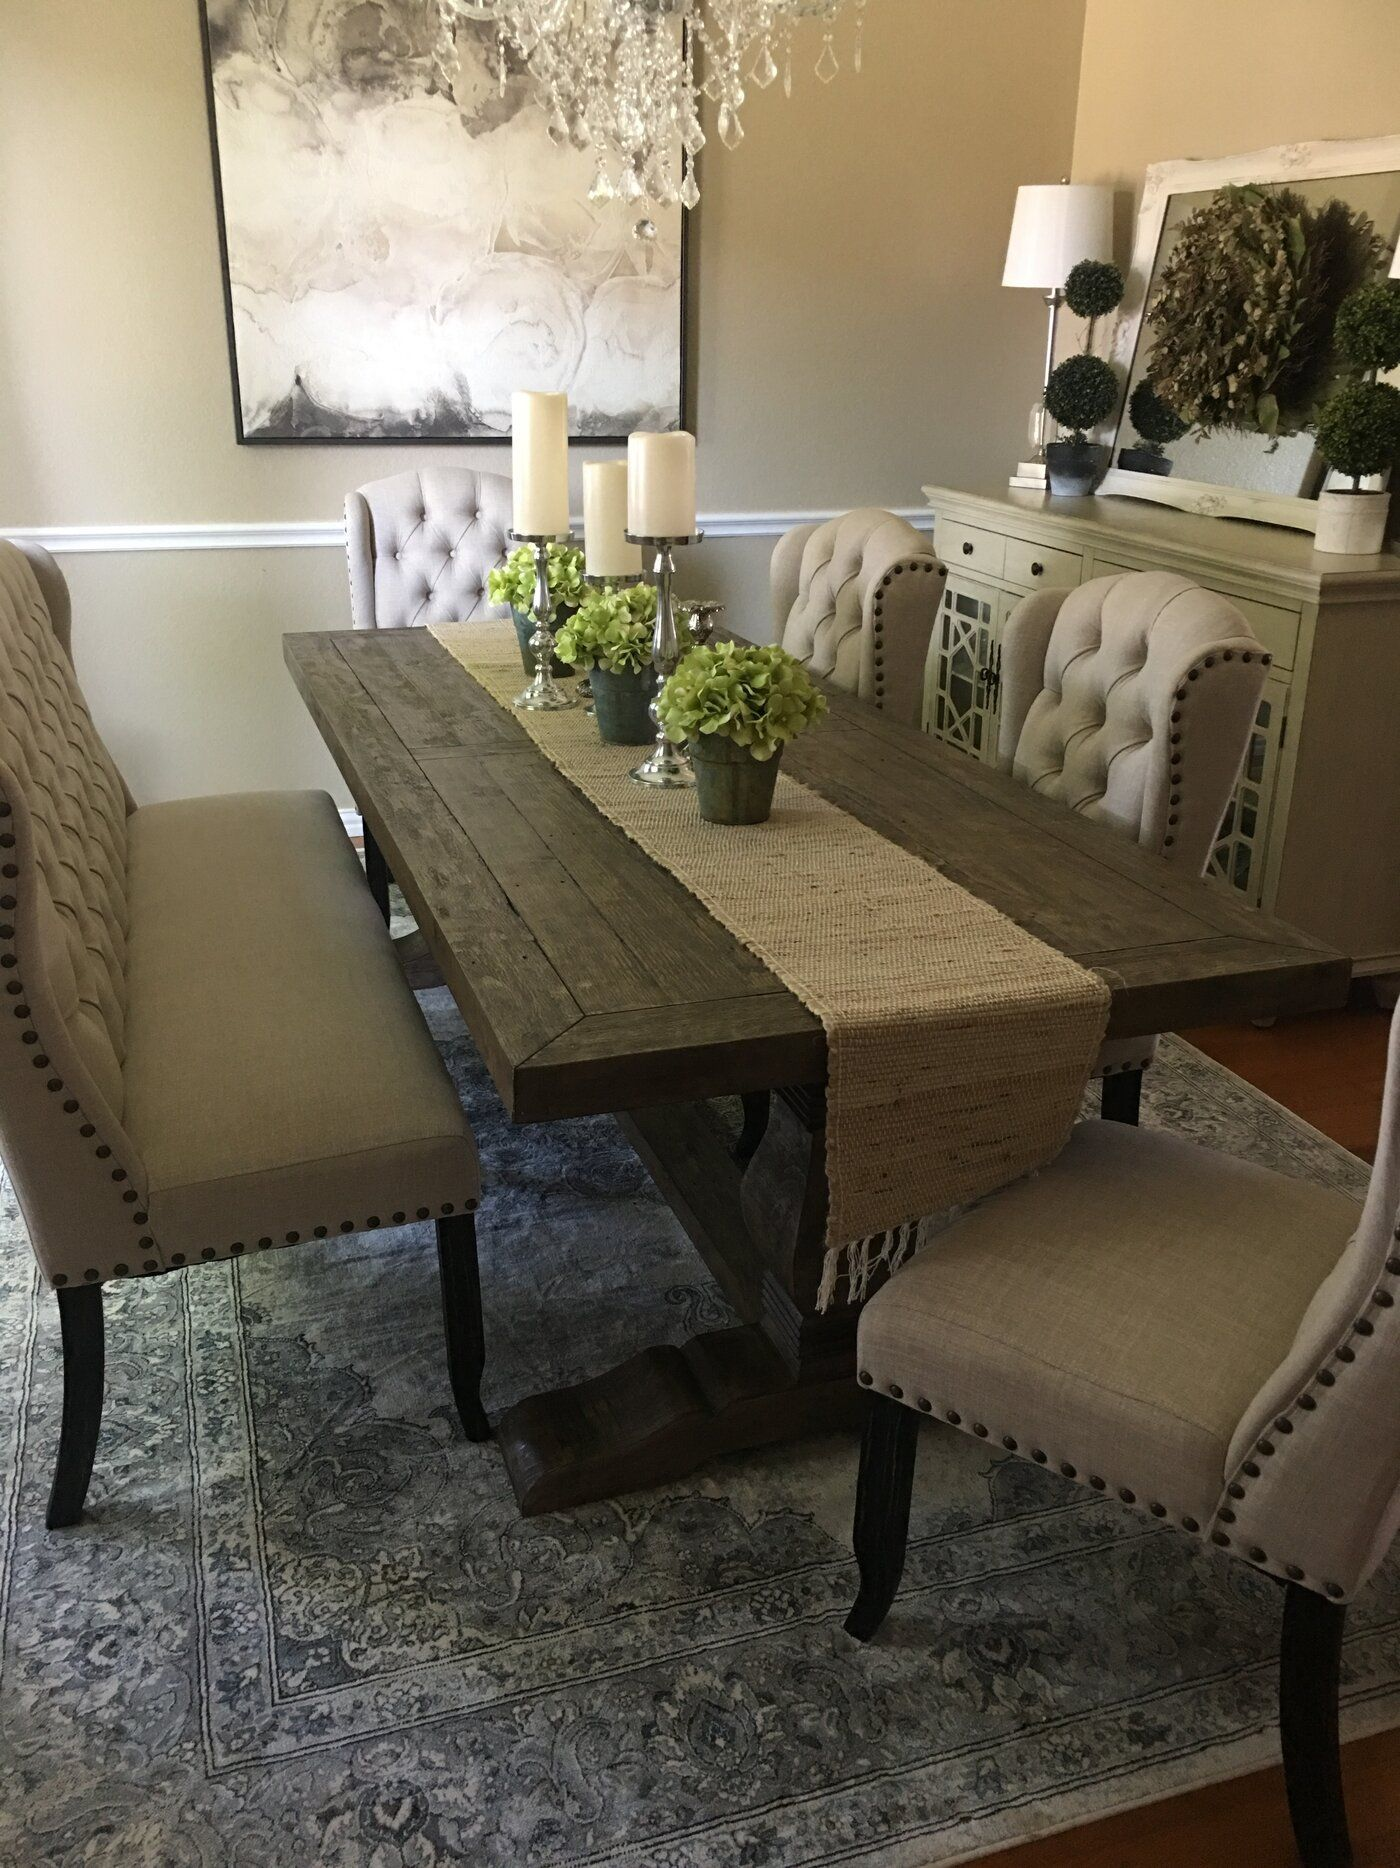 Gertrude Solid Wood Dining Table Dinning Room Table Decor Dining Room Table Centerpieces Solid Wood Dining Table